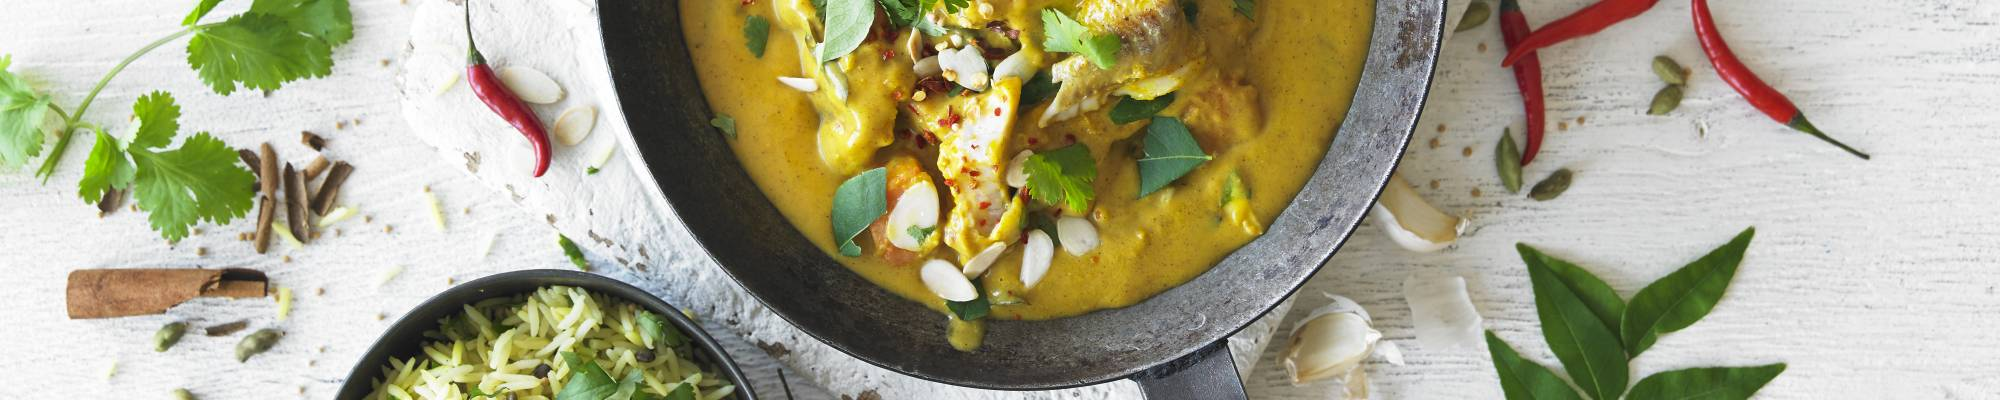 GOAN FISH CURRY with pollock, sweet potato, turmeric & biryani rice